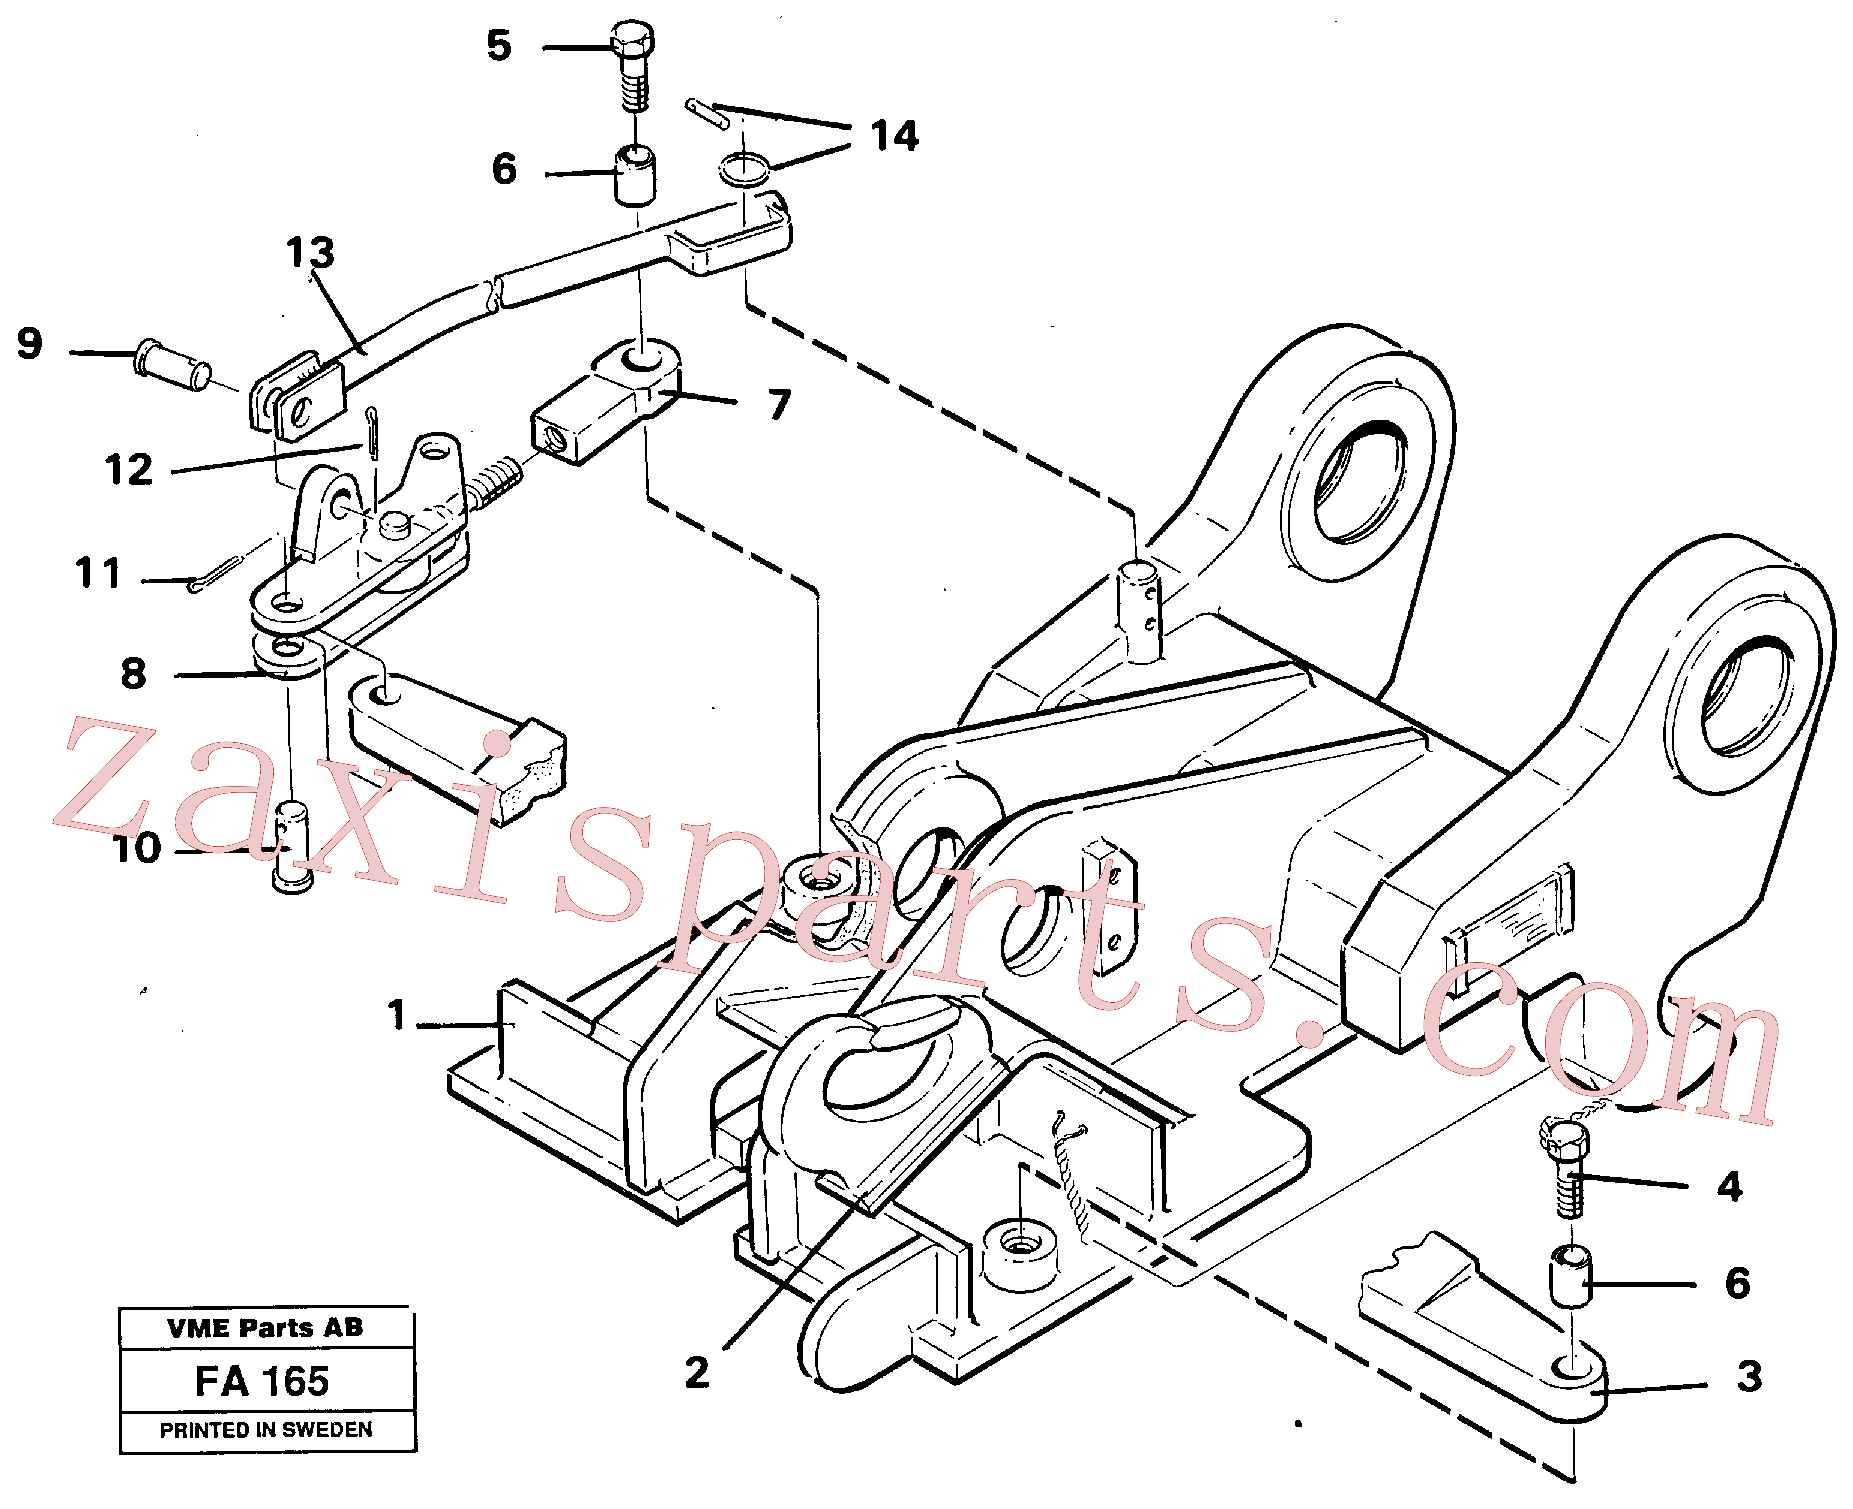 VOE14236217 for Volvo Quickfit, mechanical(FA165 assembly)